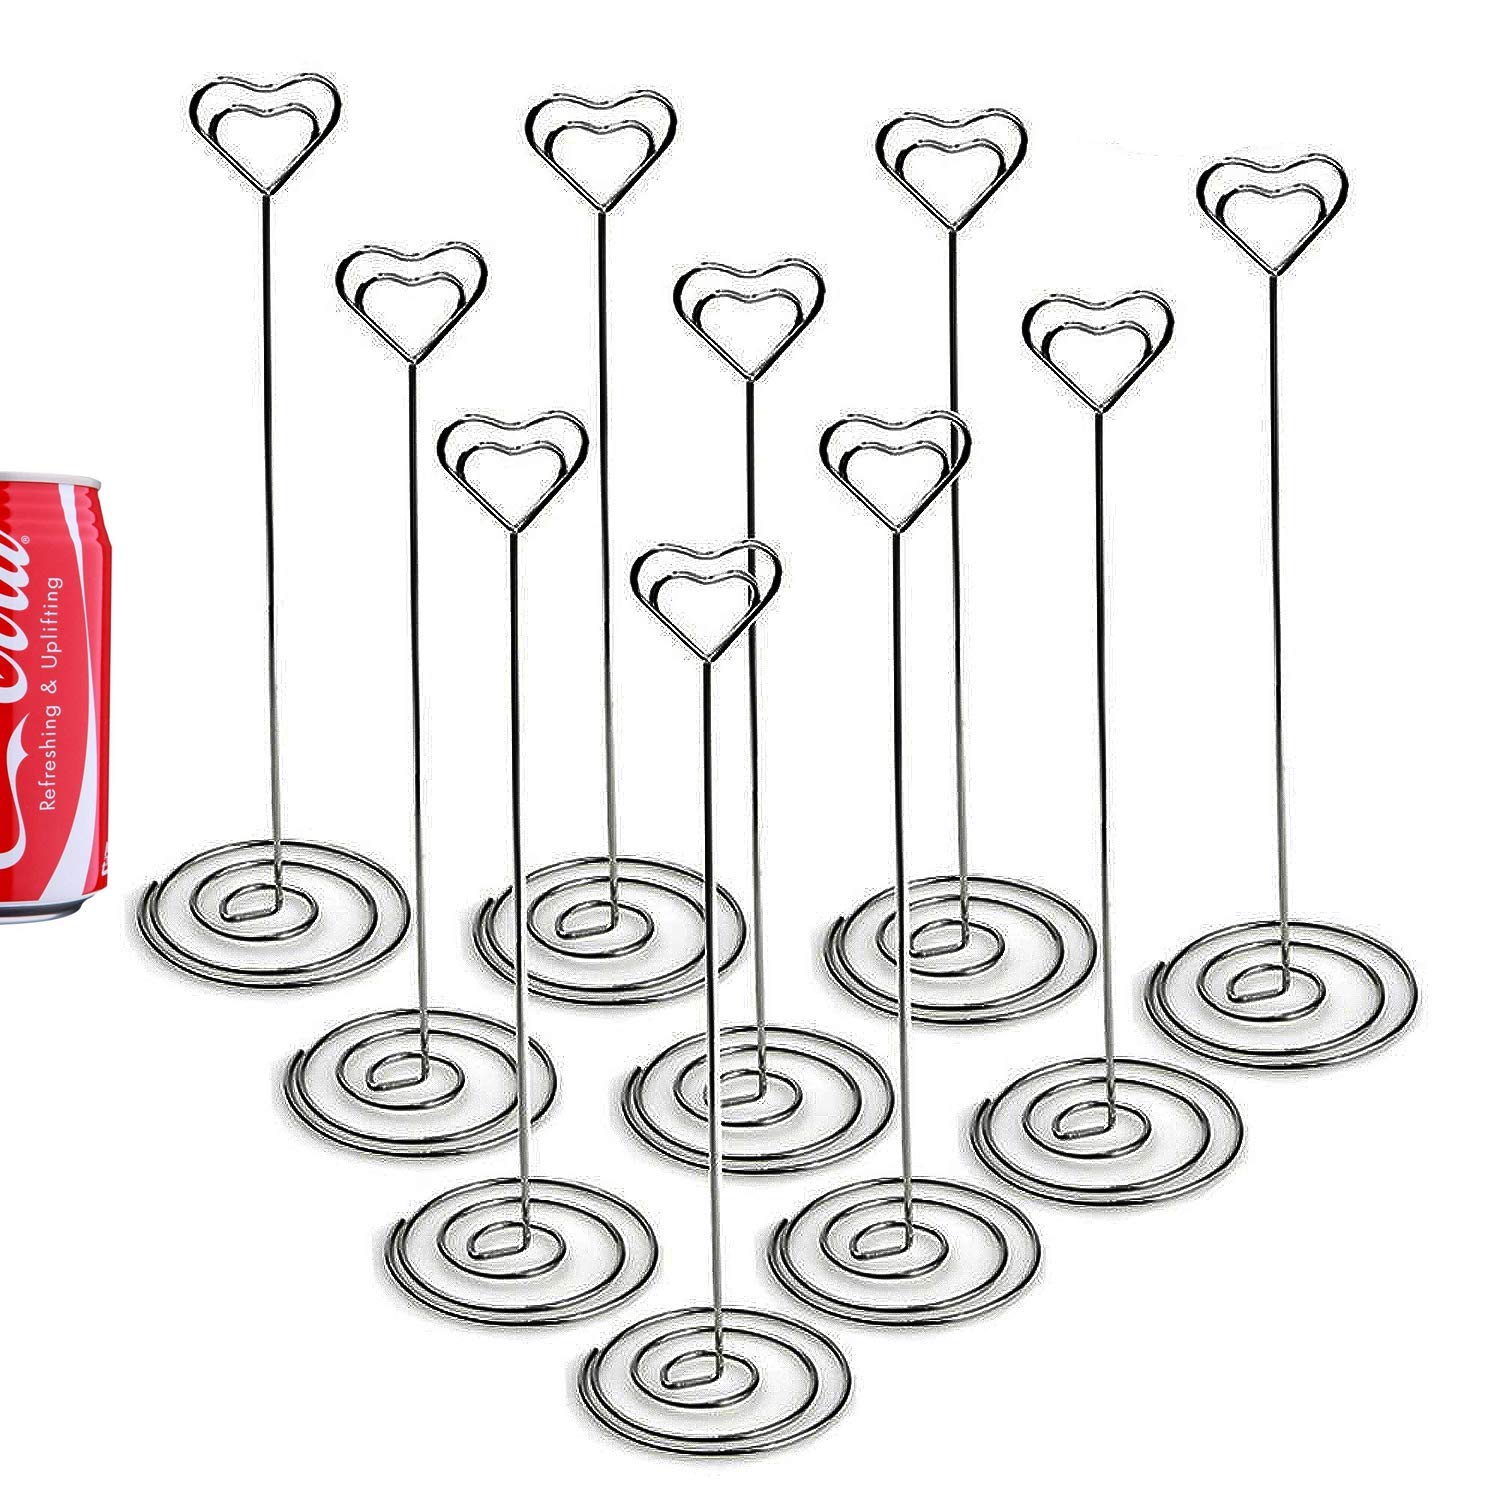 TOOGOO 20 Pack 8.75 Inch Tall Place Card Holders Creative Photo Holder Rose Gold Metal Funny Heart Clip Desktop Decoration Memo Holder Stand Tabletop Card Holder